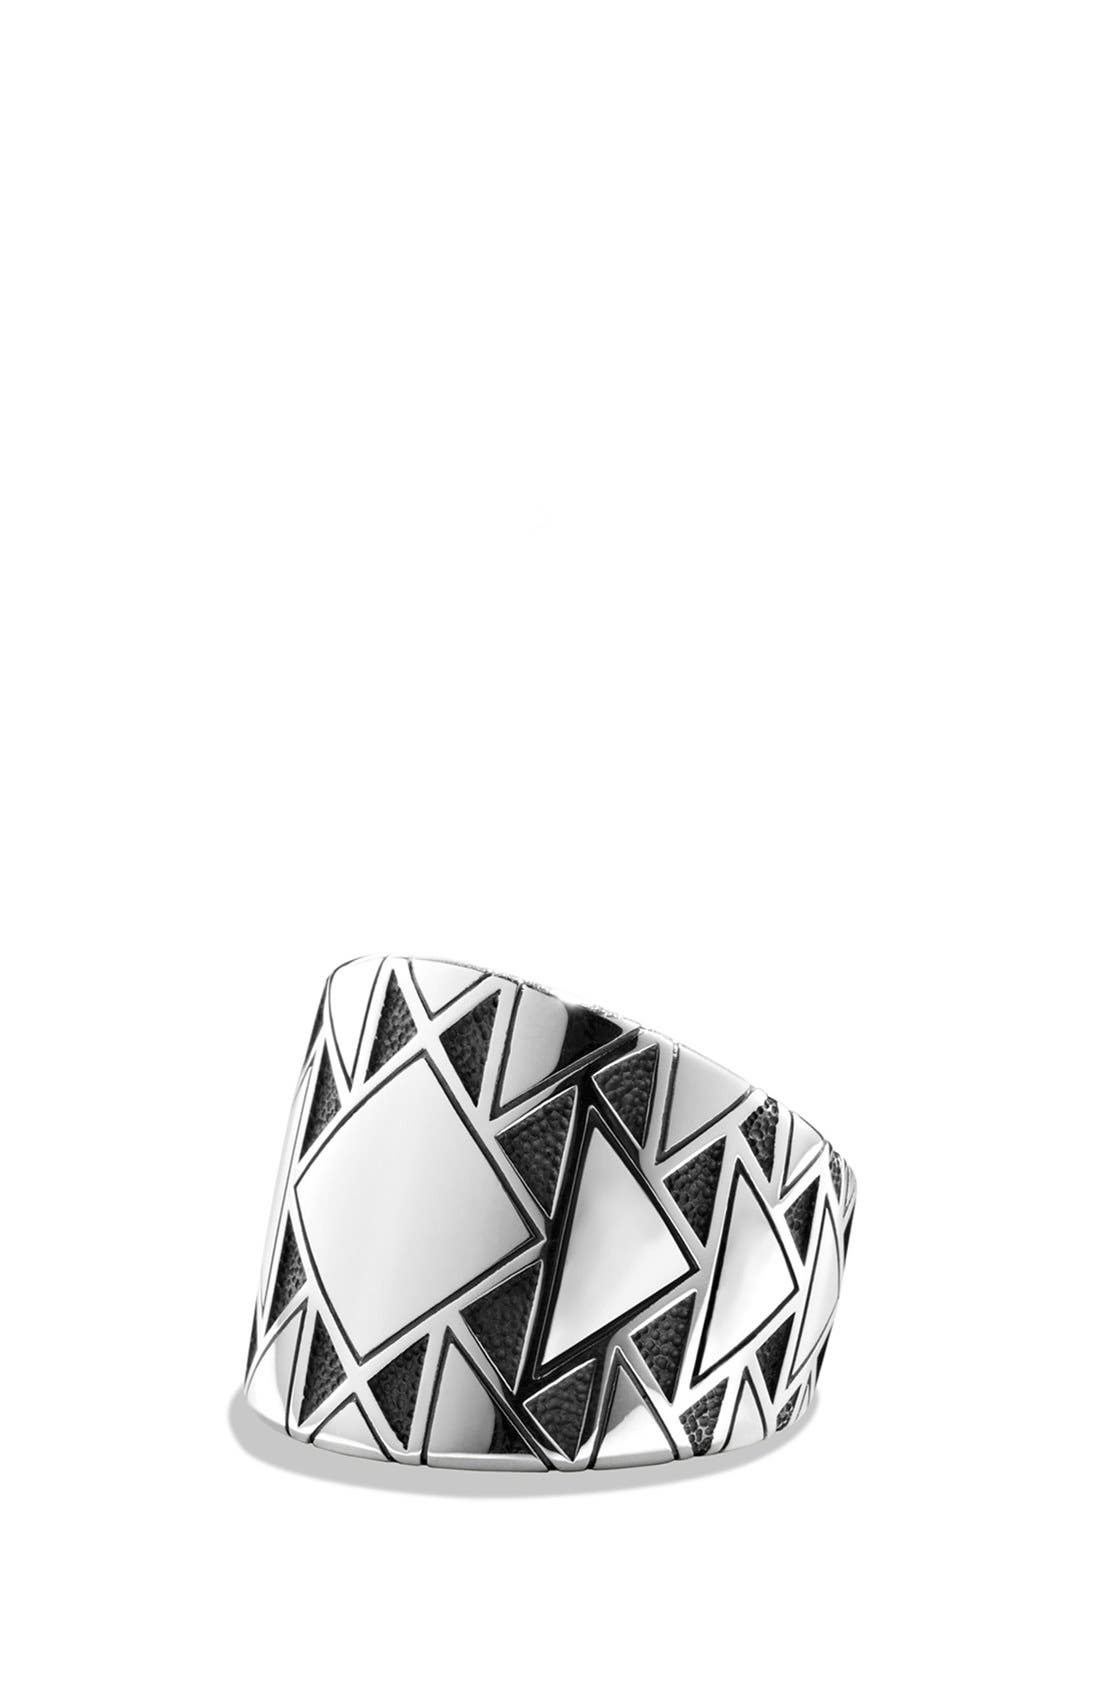 Southwest Signet Ring with Black Diamonds,                             Main thumbnail 1, color,                             Silver